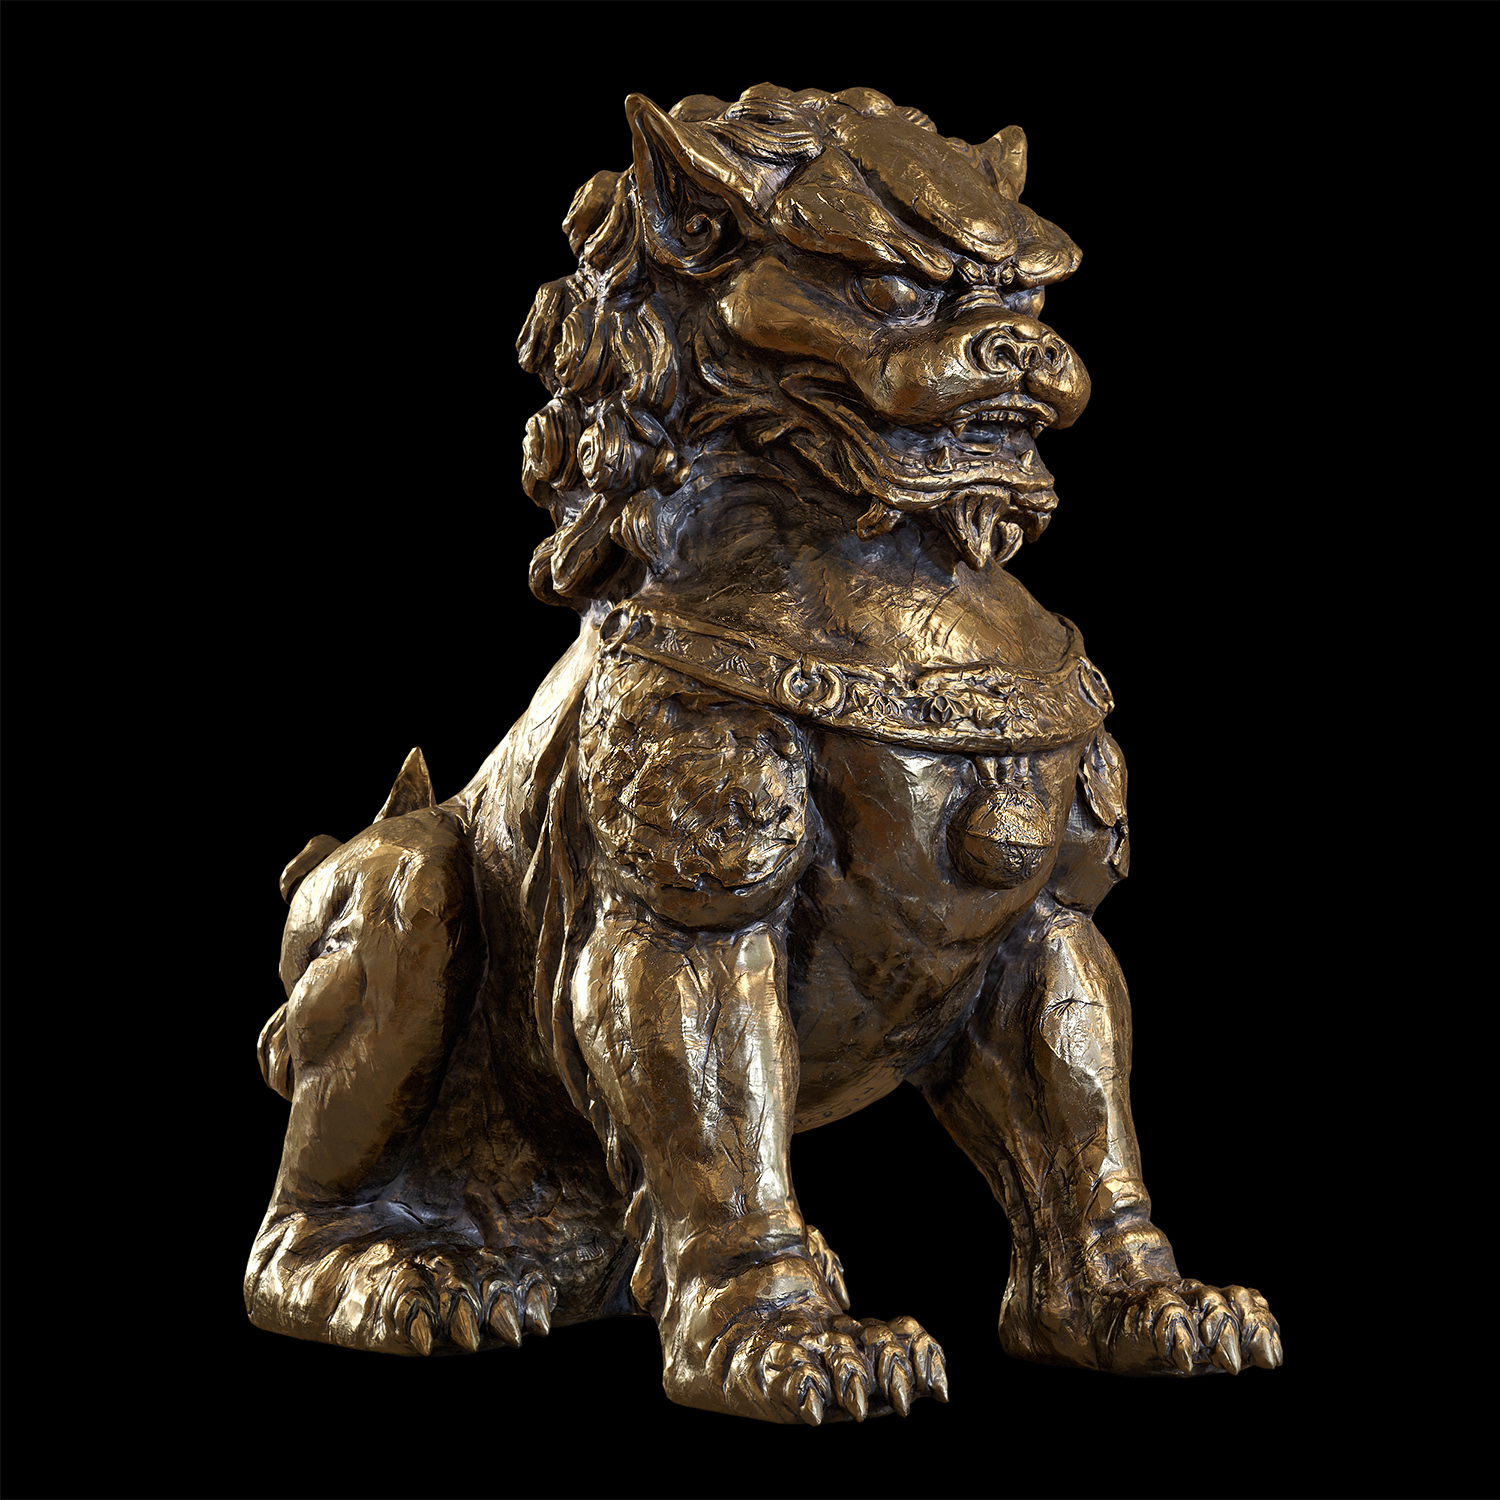 Chinese lion guardian sculpture lowpoly 3d model by doubleagent2005 on  DeviantArt